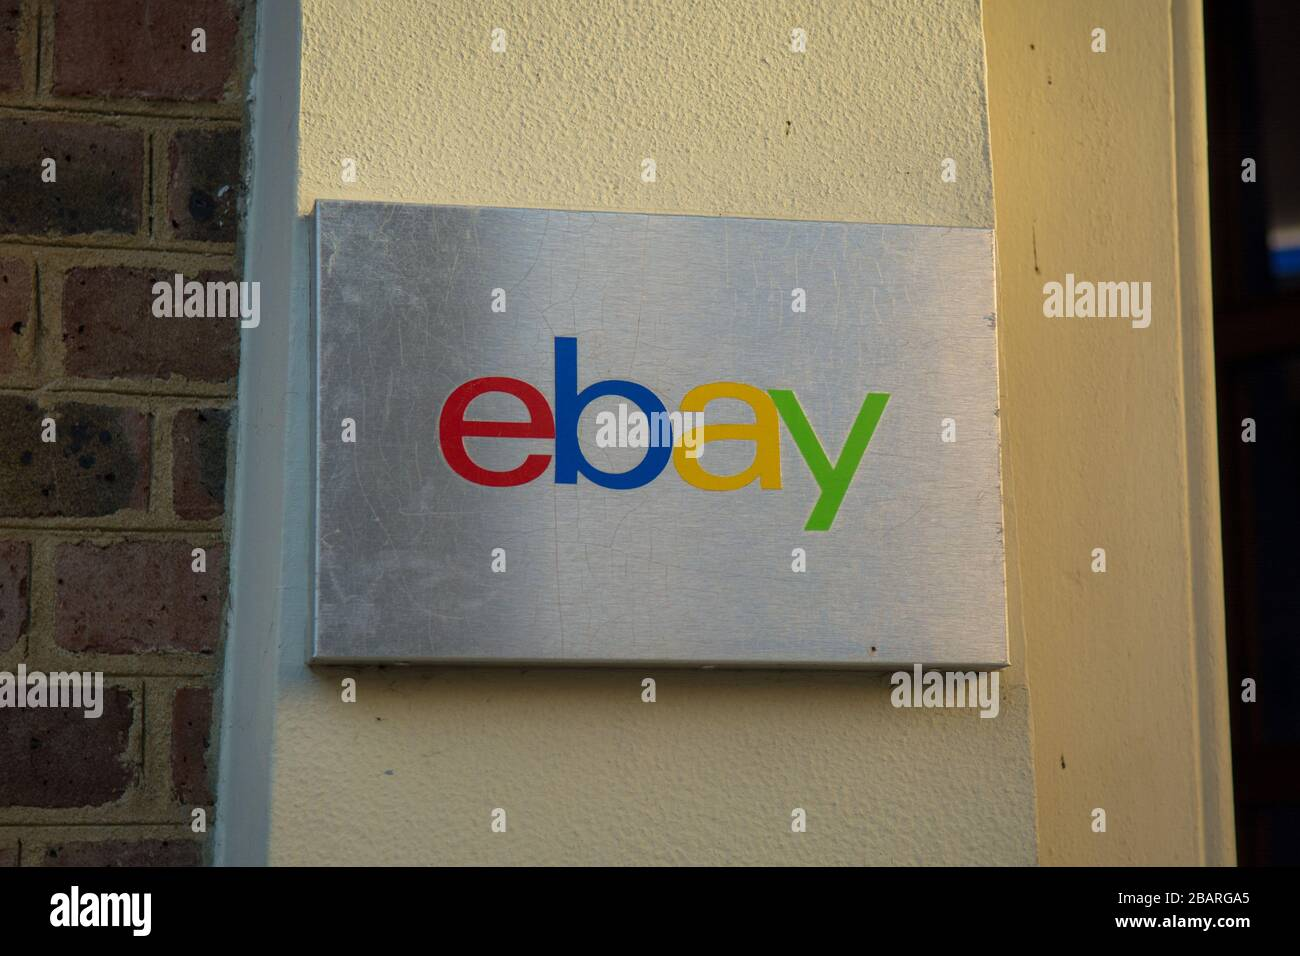 Ebay Logo On The Exterior Of Their London Hq Offices In Richmond Stock Photo Alamy